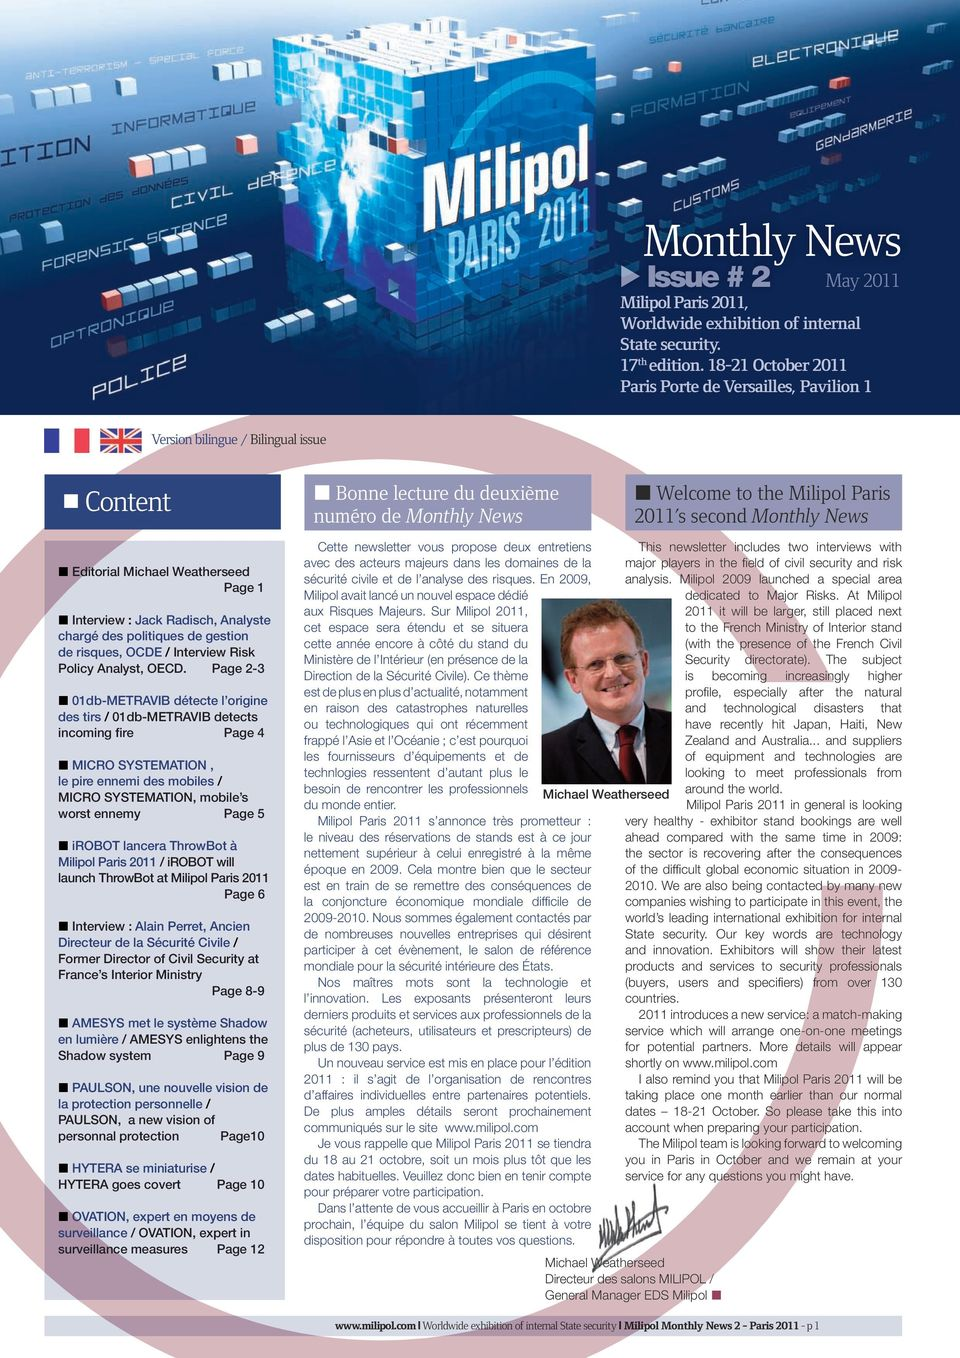 second Monthly News Editorial Michael Weatherseed Page 1 Interview : Jack Radisch, Analyste chargé des politiques de gestion de risques, OCDE / Interview Risk Policy Analyst, OECD.